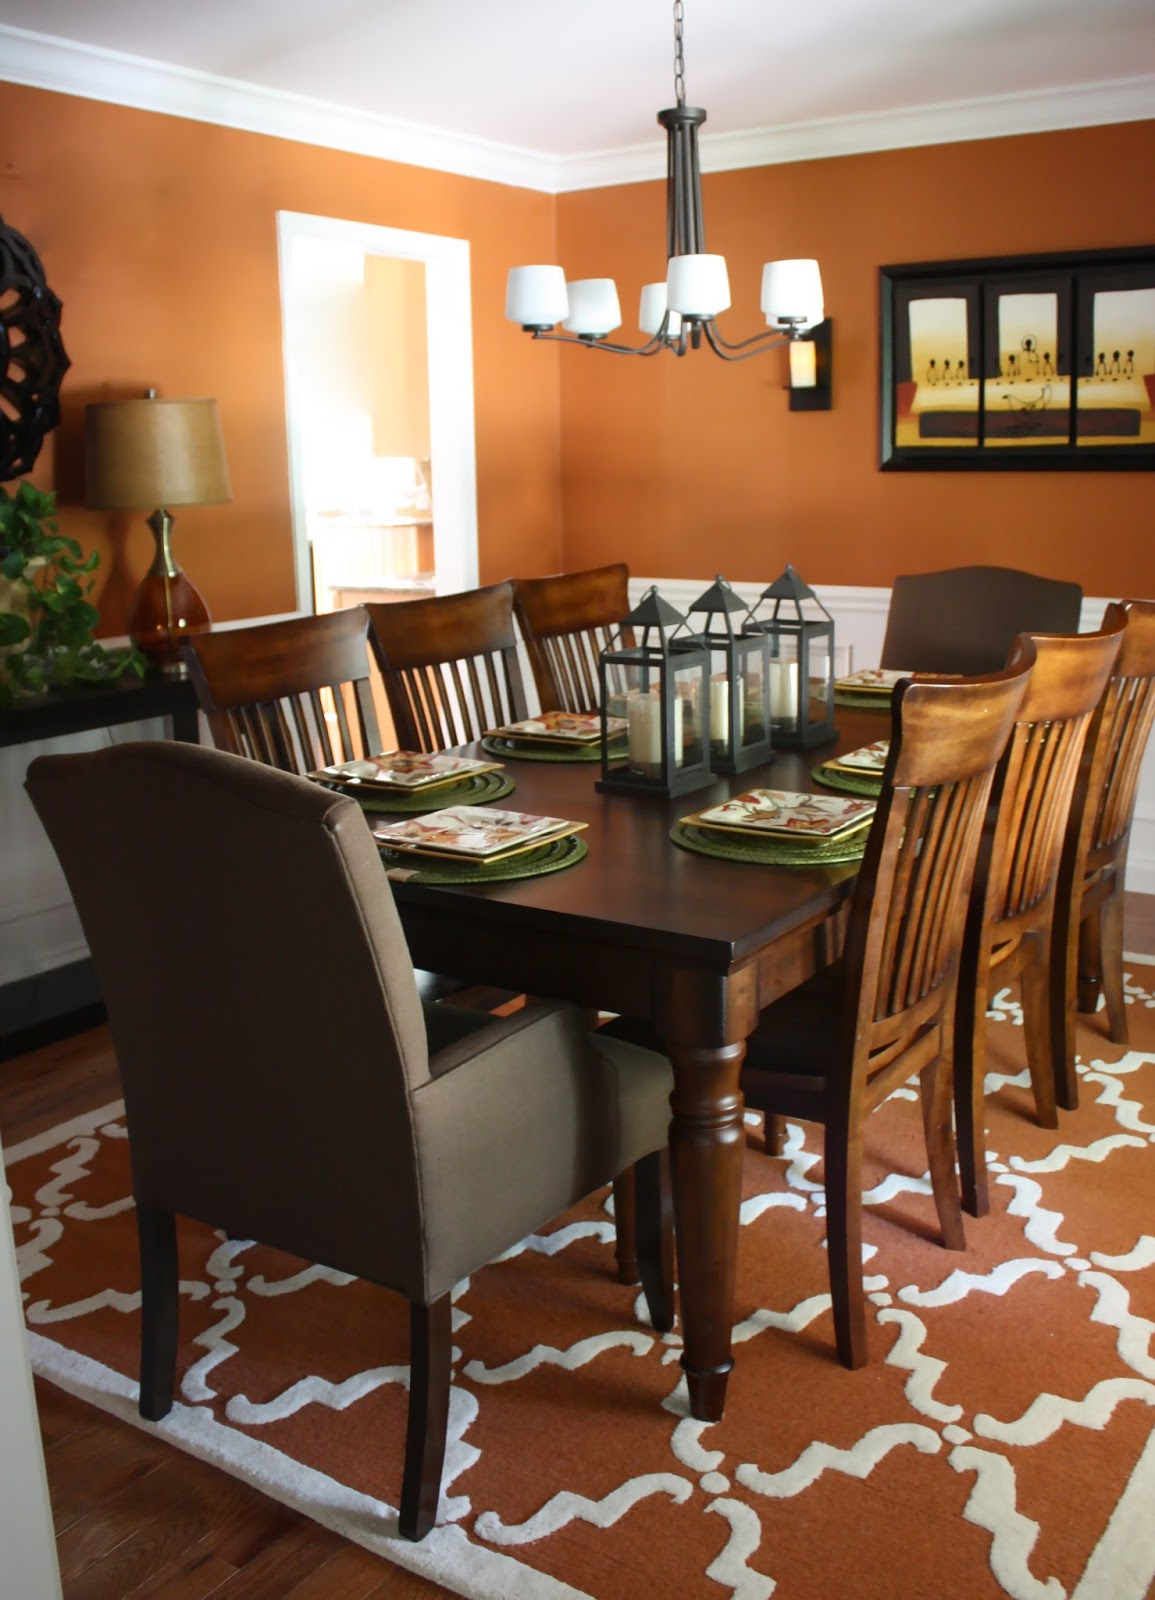 The Yellow Cape Cod Before and AfterA Dining Room Design Plan Comes To Life